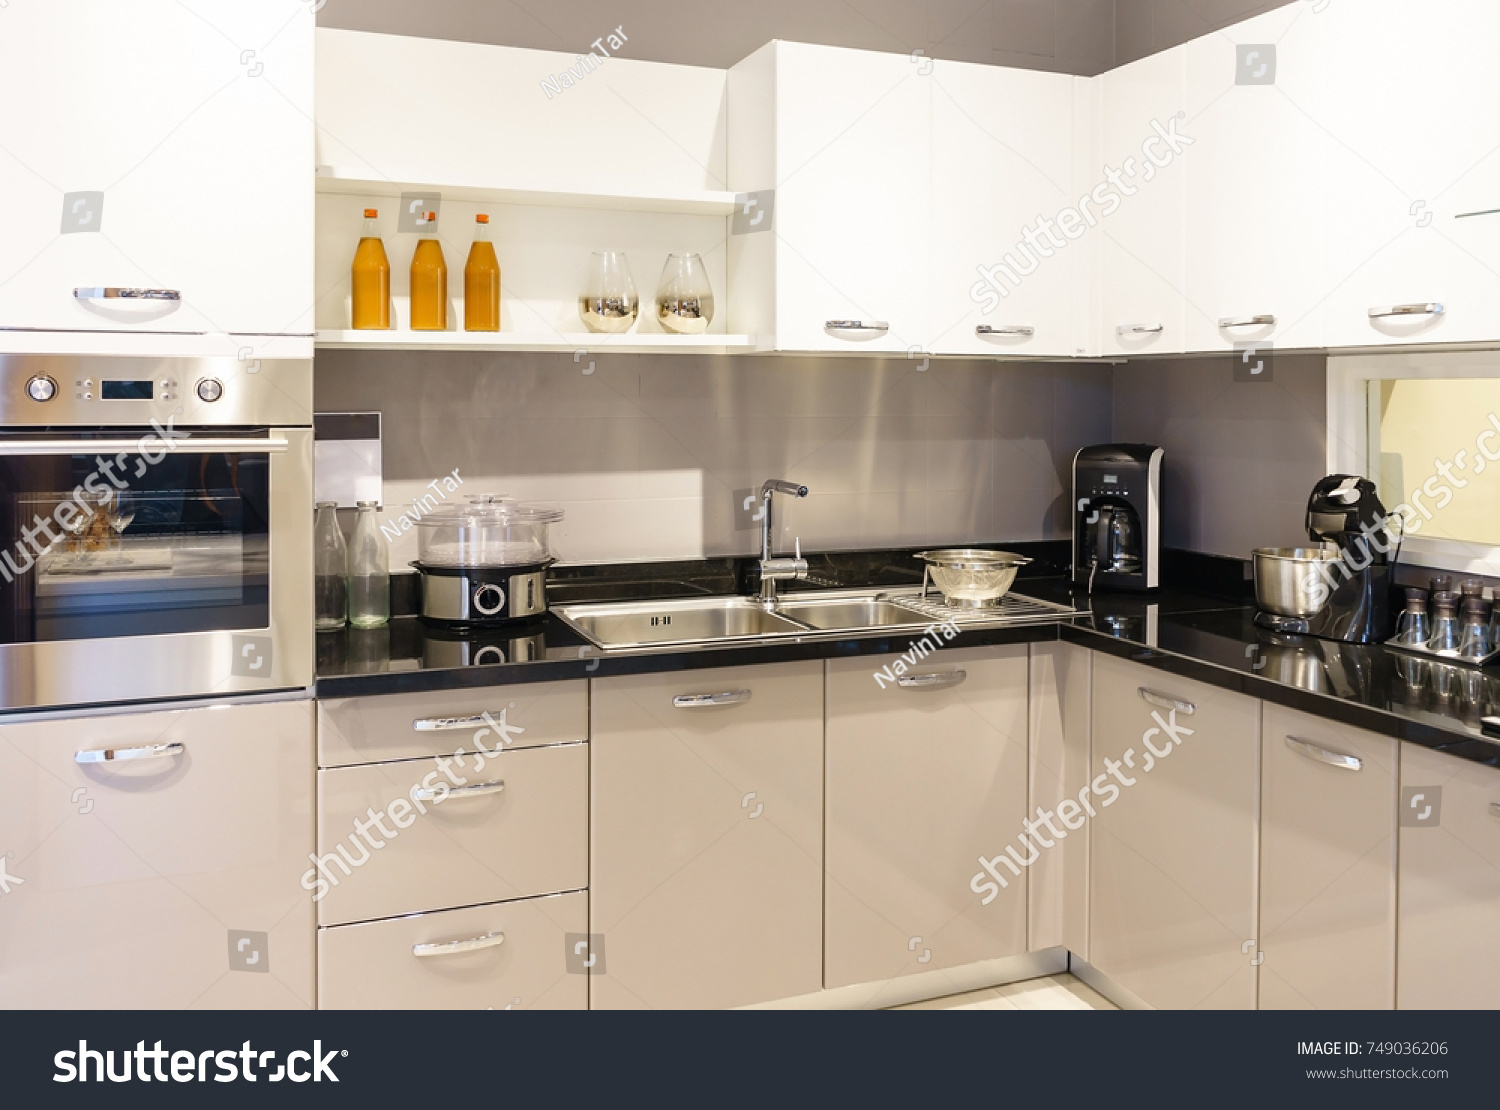 contemporary kitchen furniture detail. Modern Kitchen Furniture With Contemporary Kitchenware Like Hood, Black Induction Stove And Oven In House Detail I